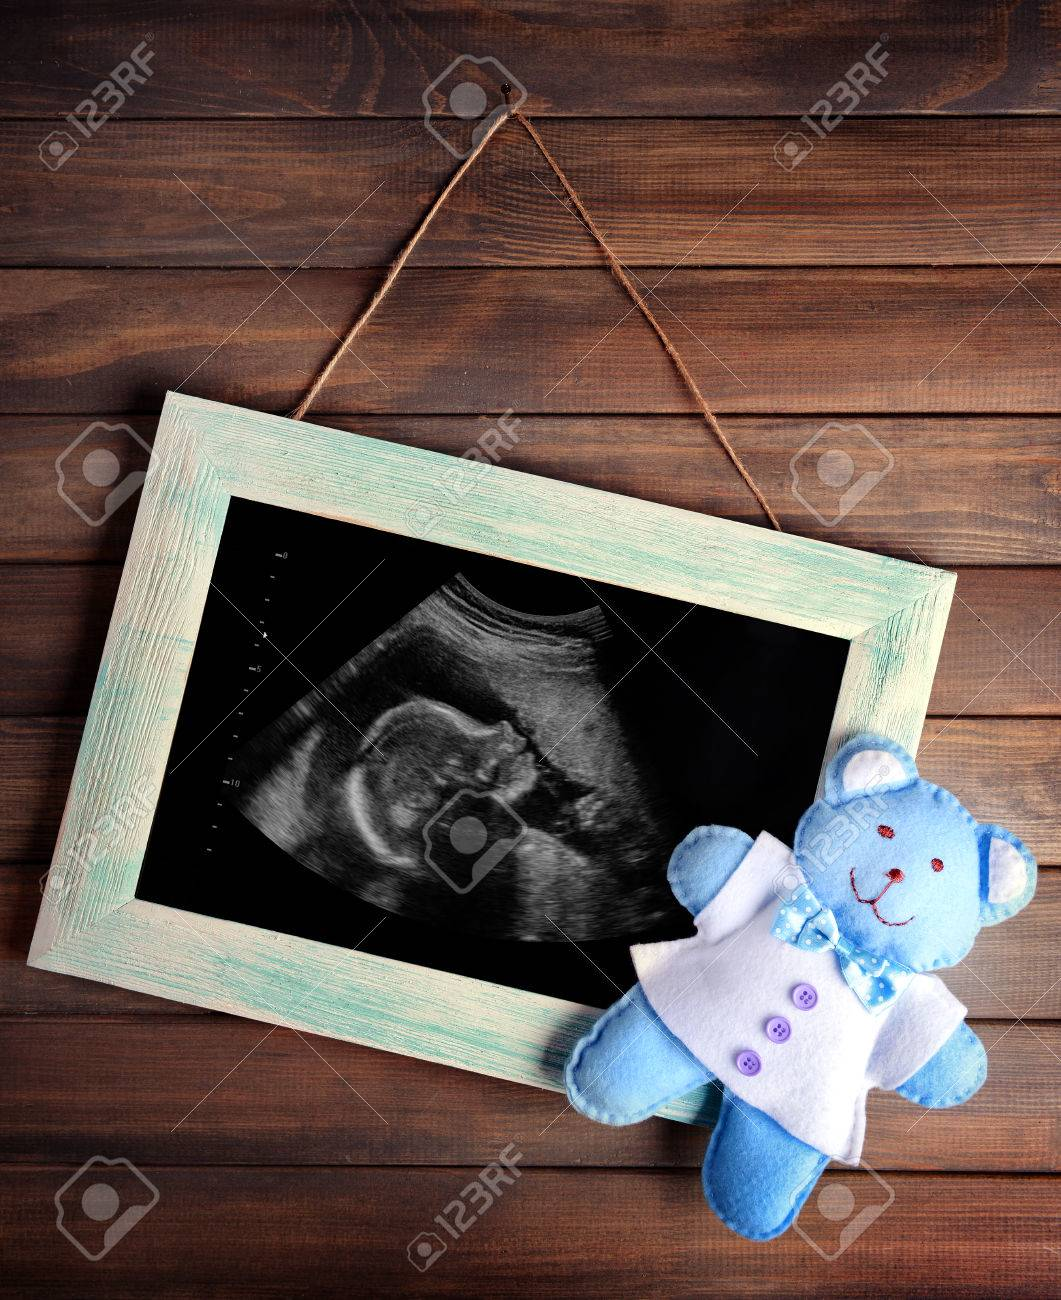 Vintage frame with ultrasound scan of baby on wooden background vintage frame with ultrasound scan of baby on wooden background stock photo 67369214 jeuxipadfo Gallery